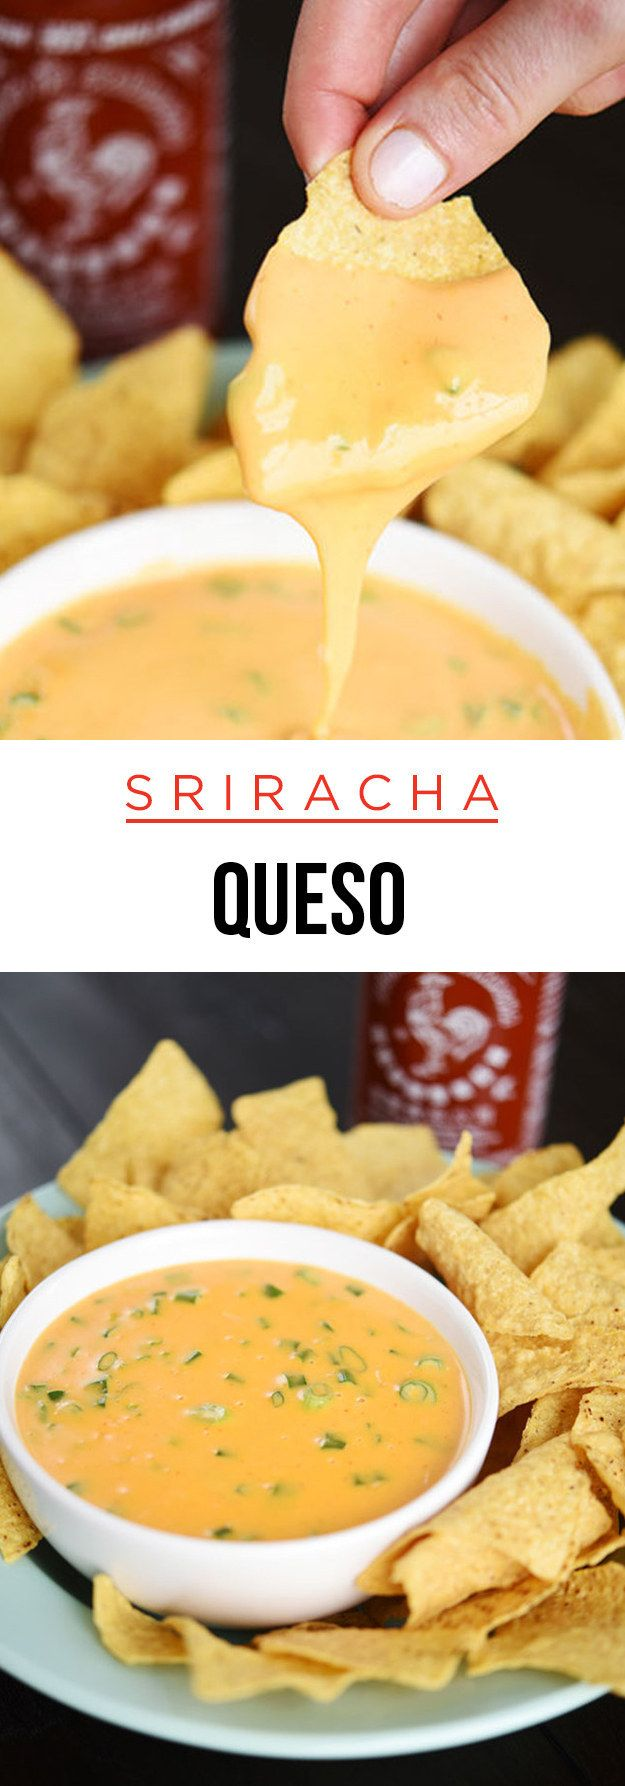 Who knew something so magical could be so easy? For more delicious Sriracha and cheese snacks, click here.